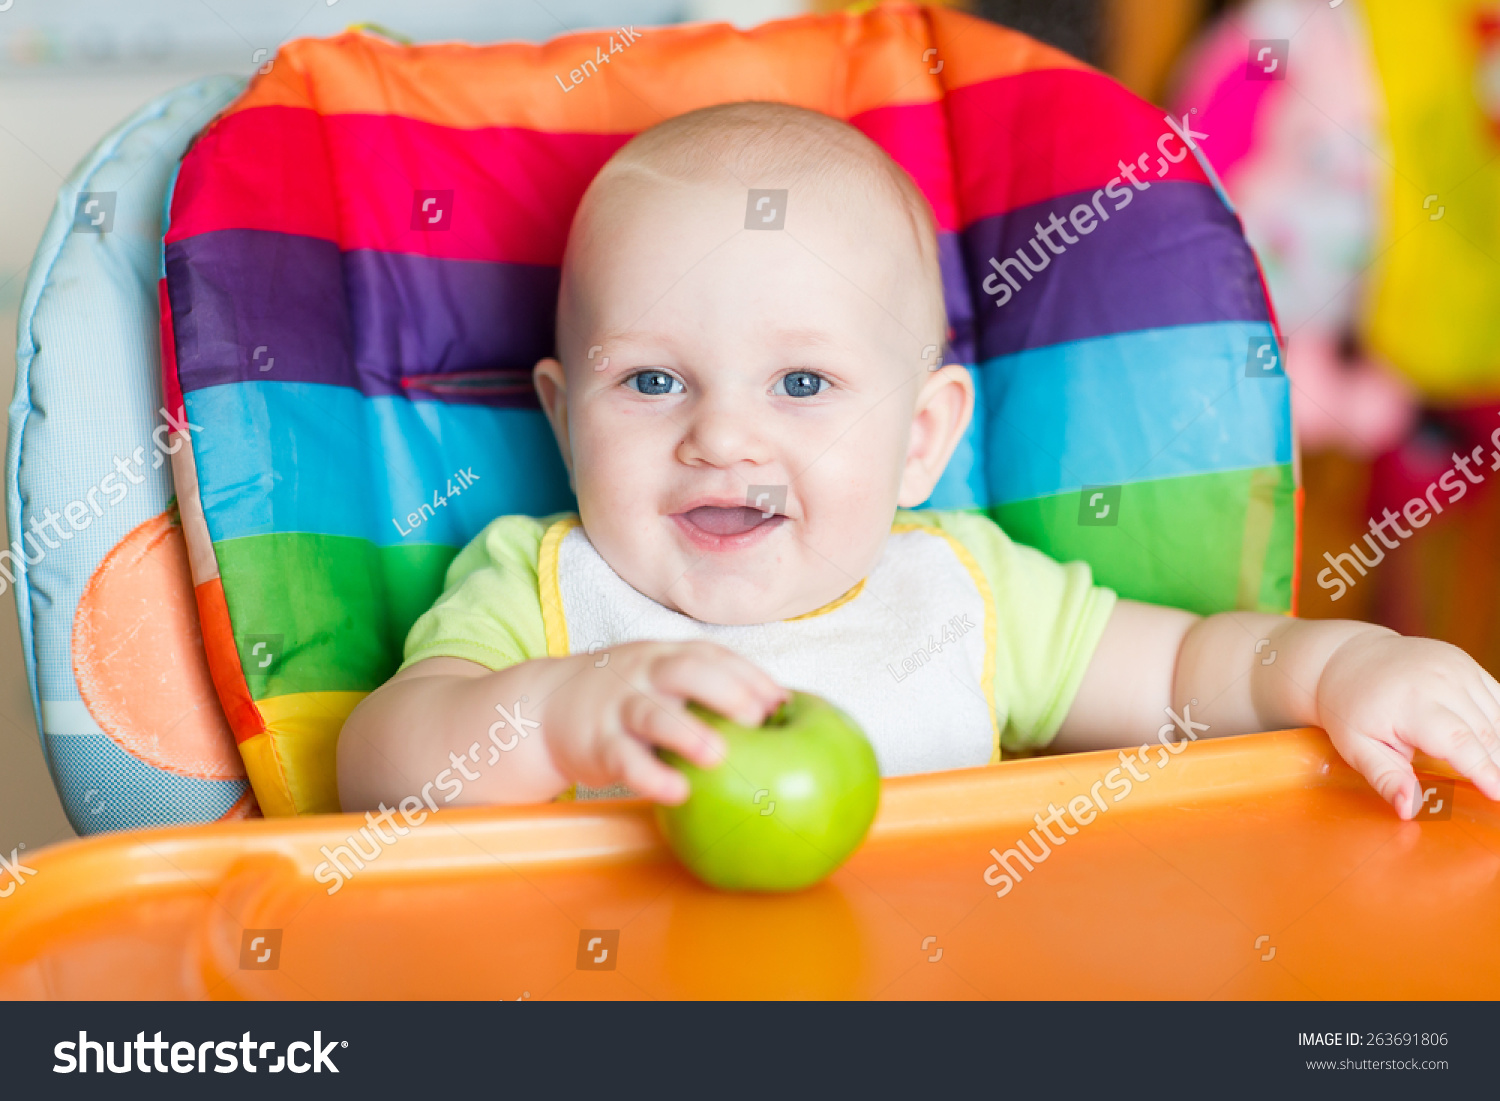 Baby Food Chair Adorable Baby Eating Apple High Chair Stock Photo